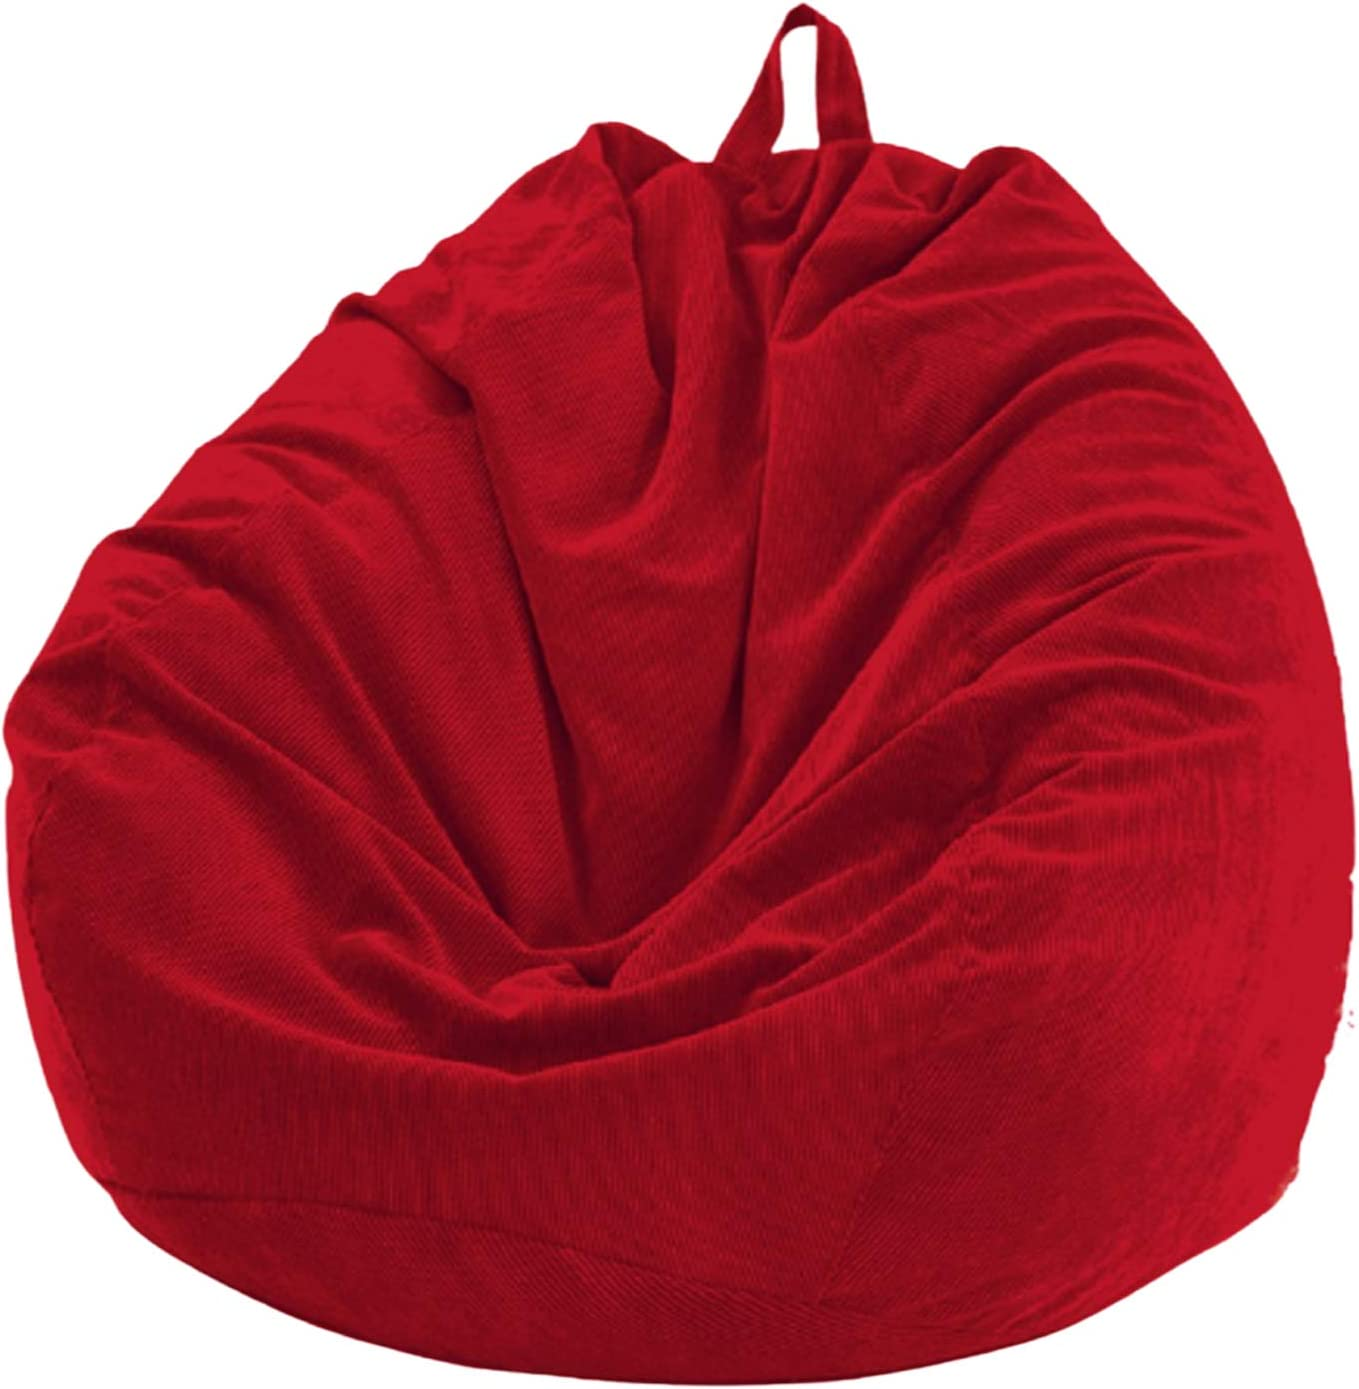 Prreey Bean Cheap super special price Bag Sofa El Paso Mall Chairs Cover Adult Kids No for Filler and